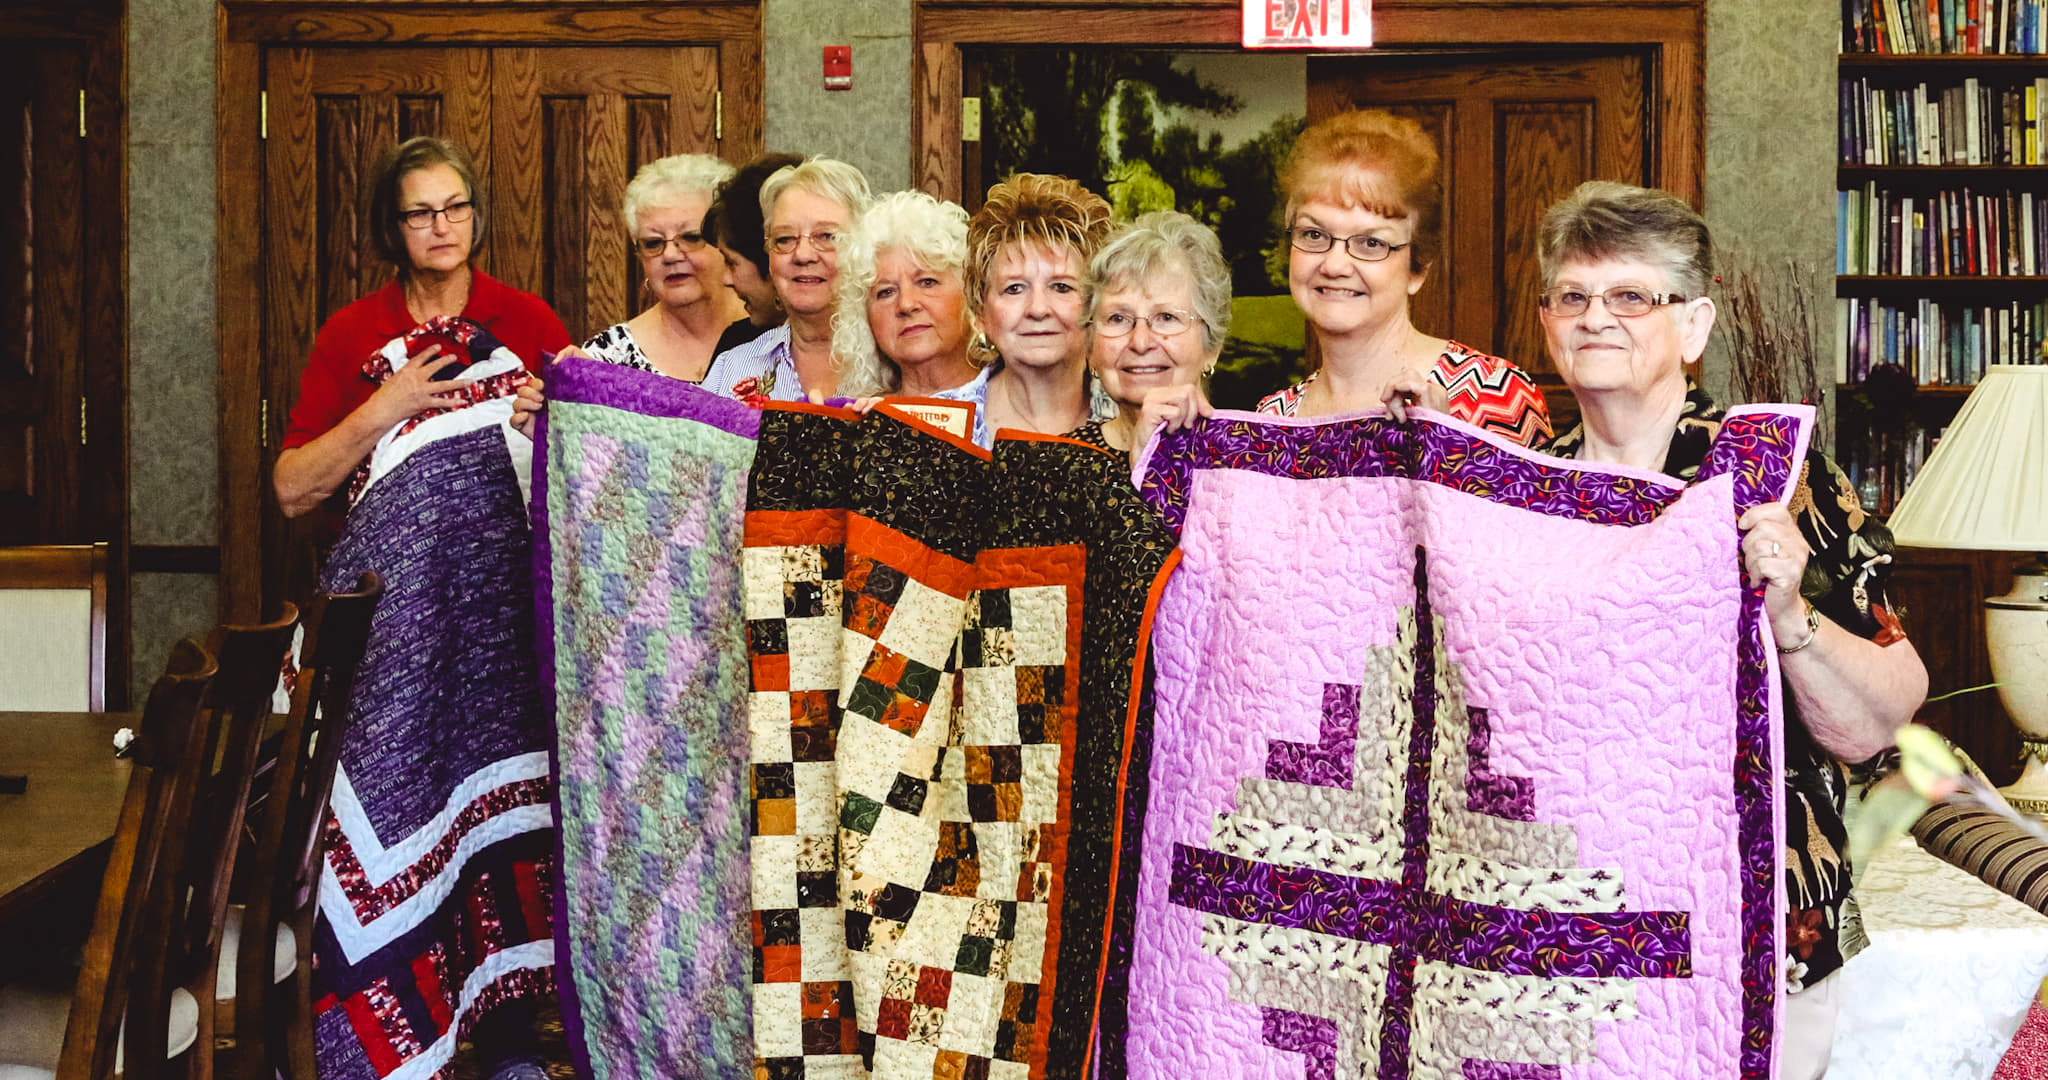 Group holding quilts.jpg